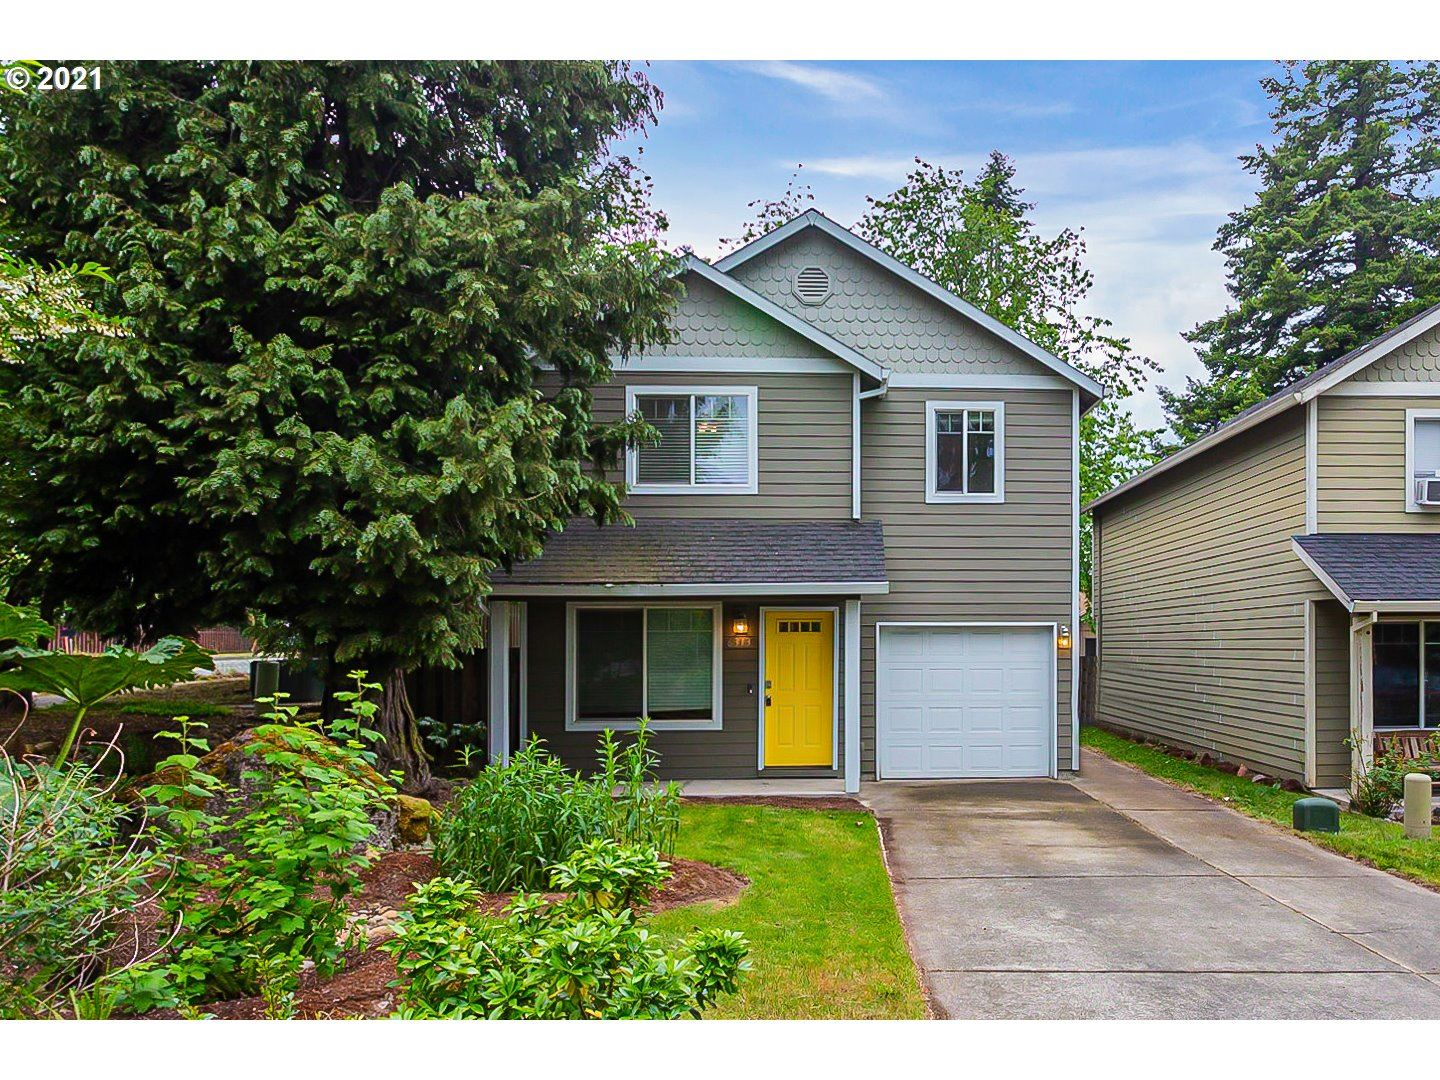 6313 SE 134TH AVE, Portland, OR 97236 - MLS#: 21140860